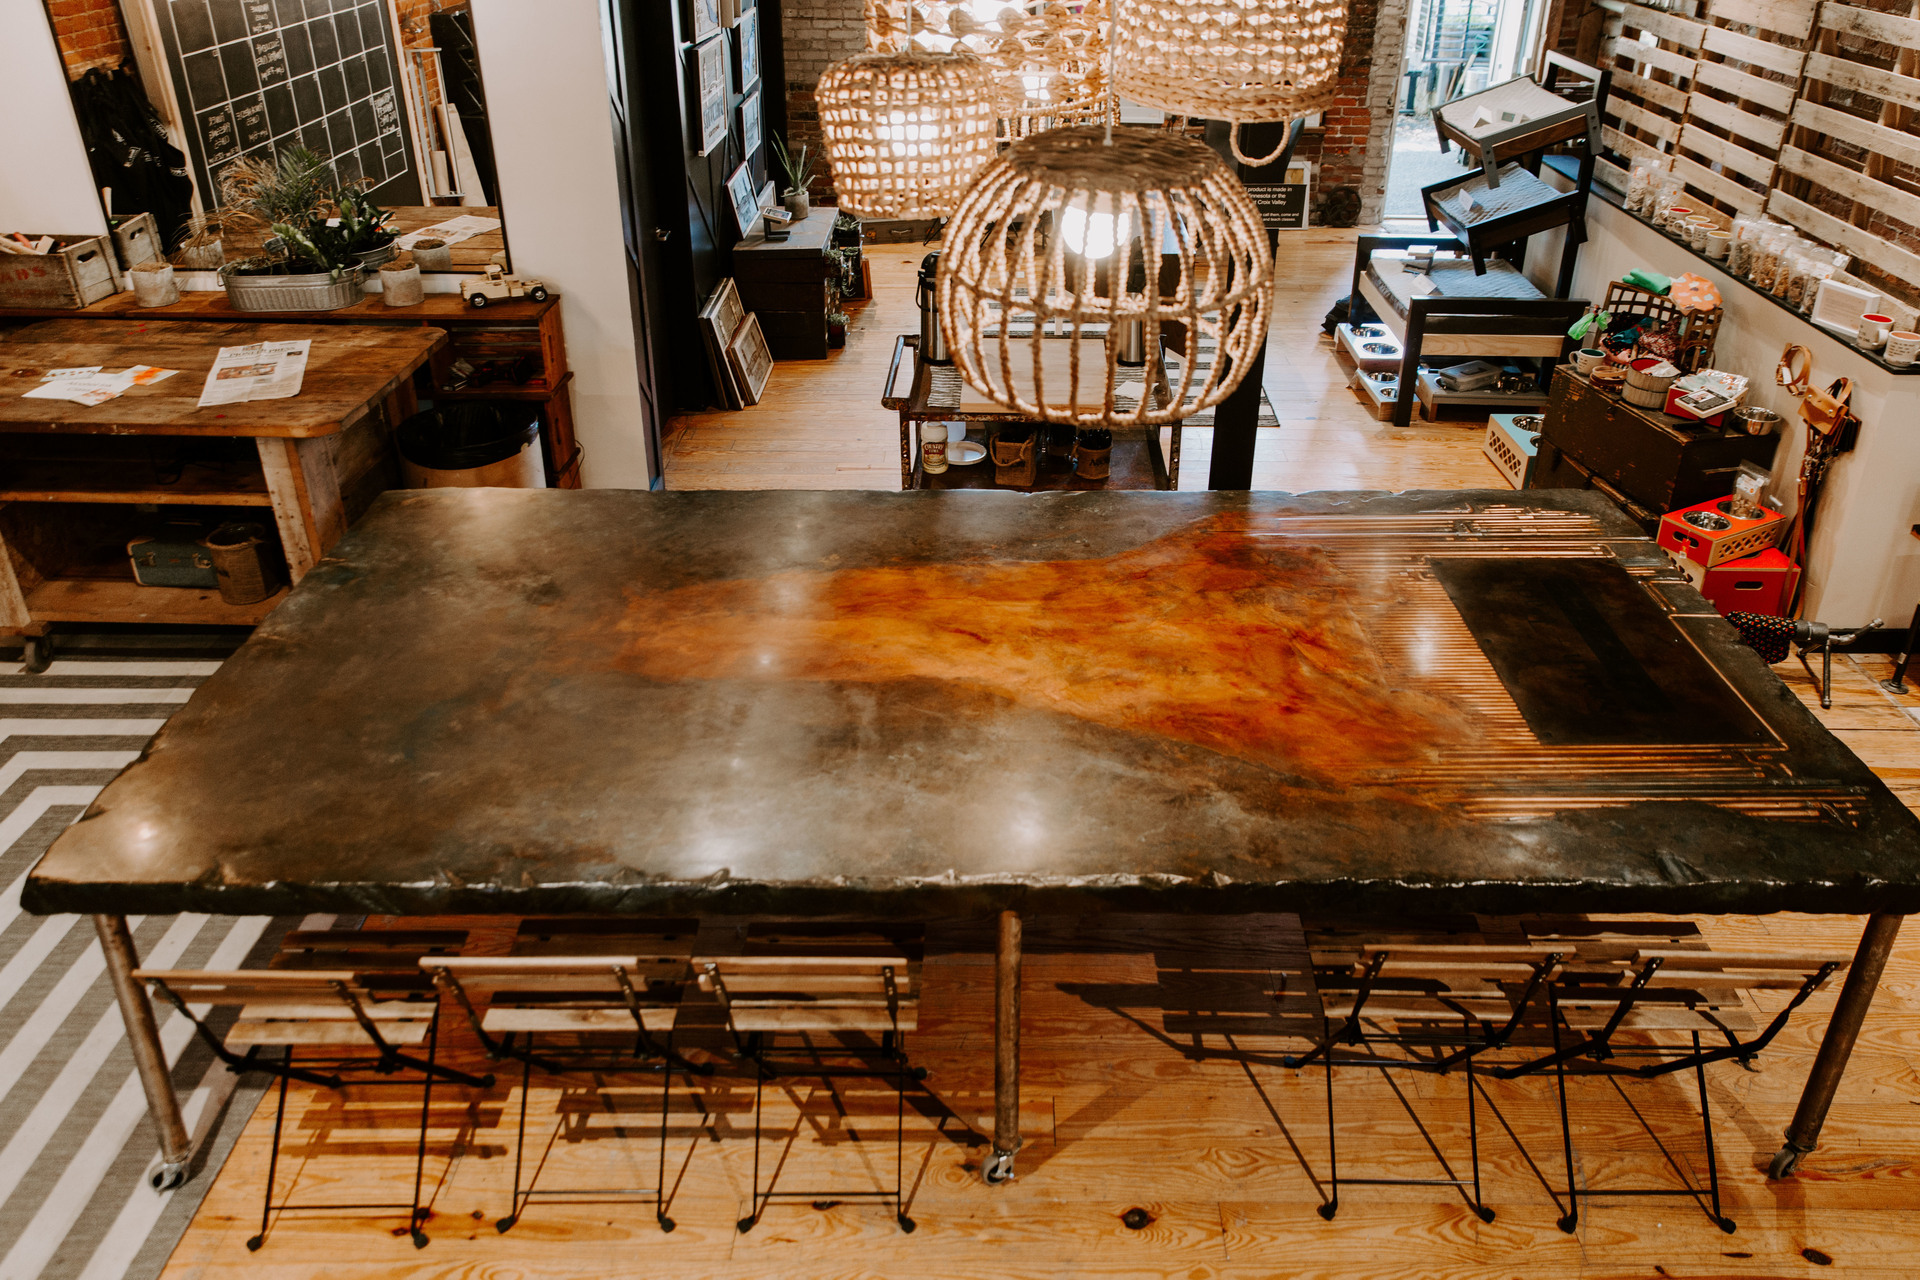 Eclectic interior design at Smith + Trade Mercantile in Stillwater, Minnesota showcases the stunning tabletop designed and created by Granicrete Minnesota.